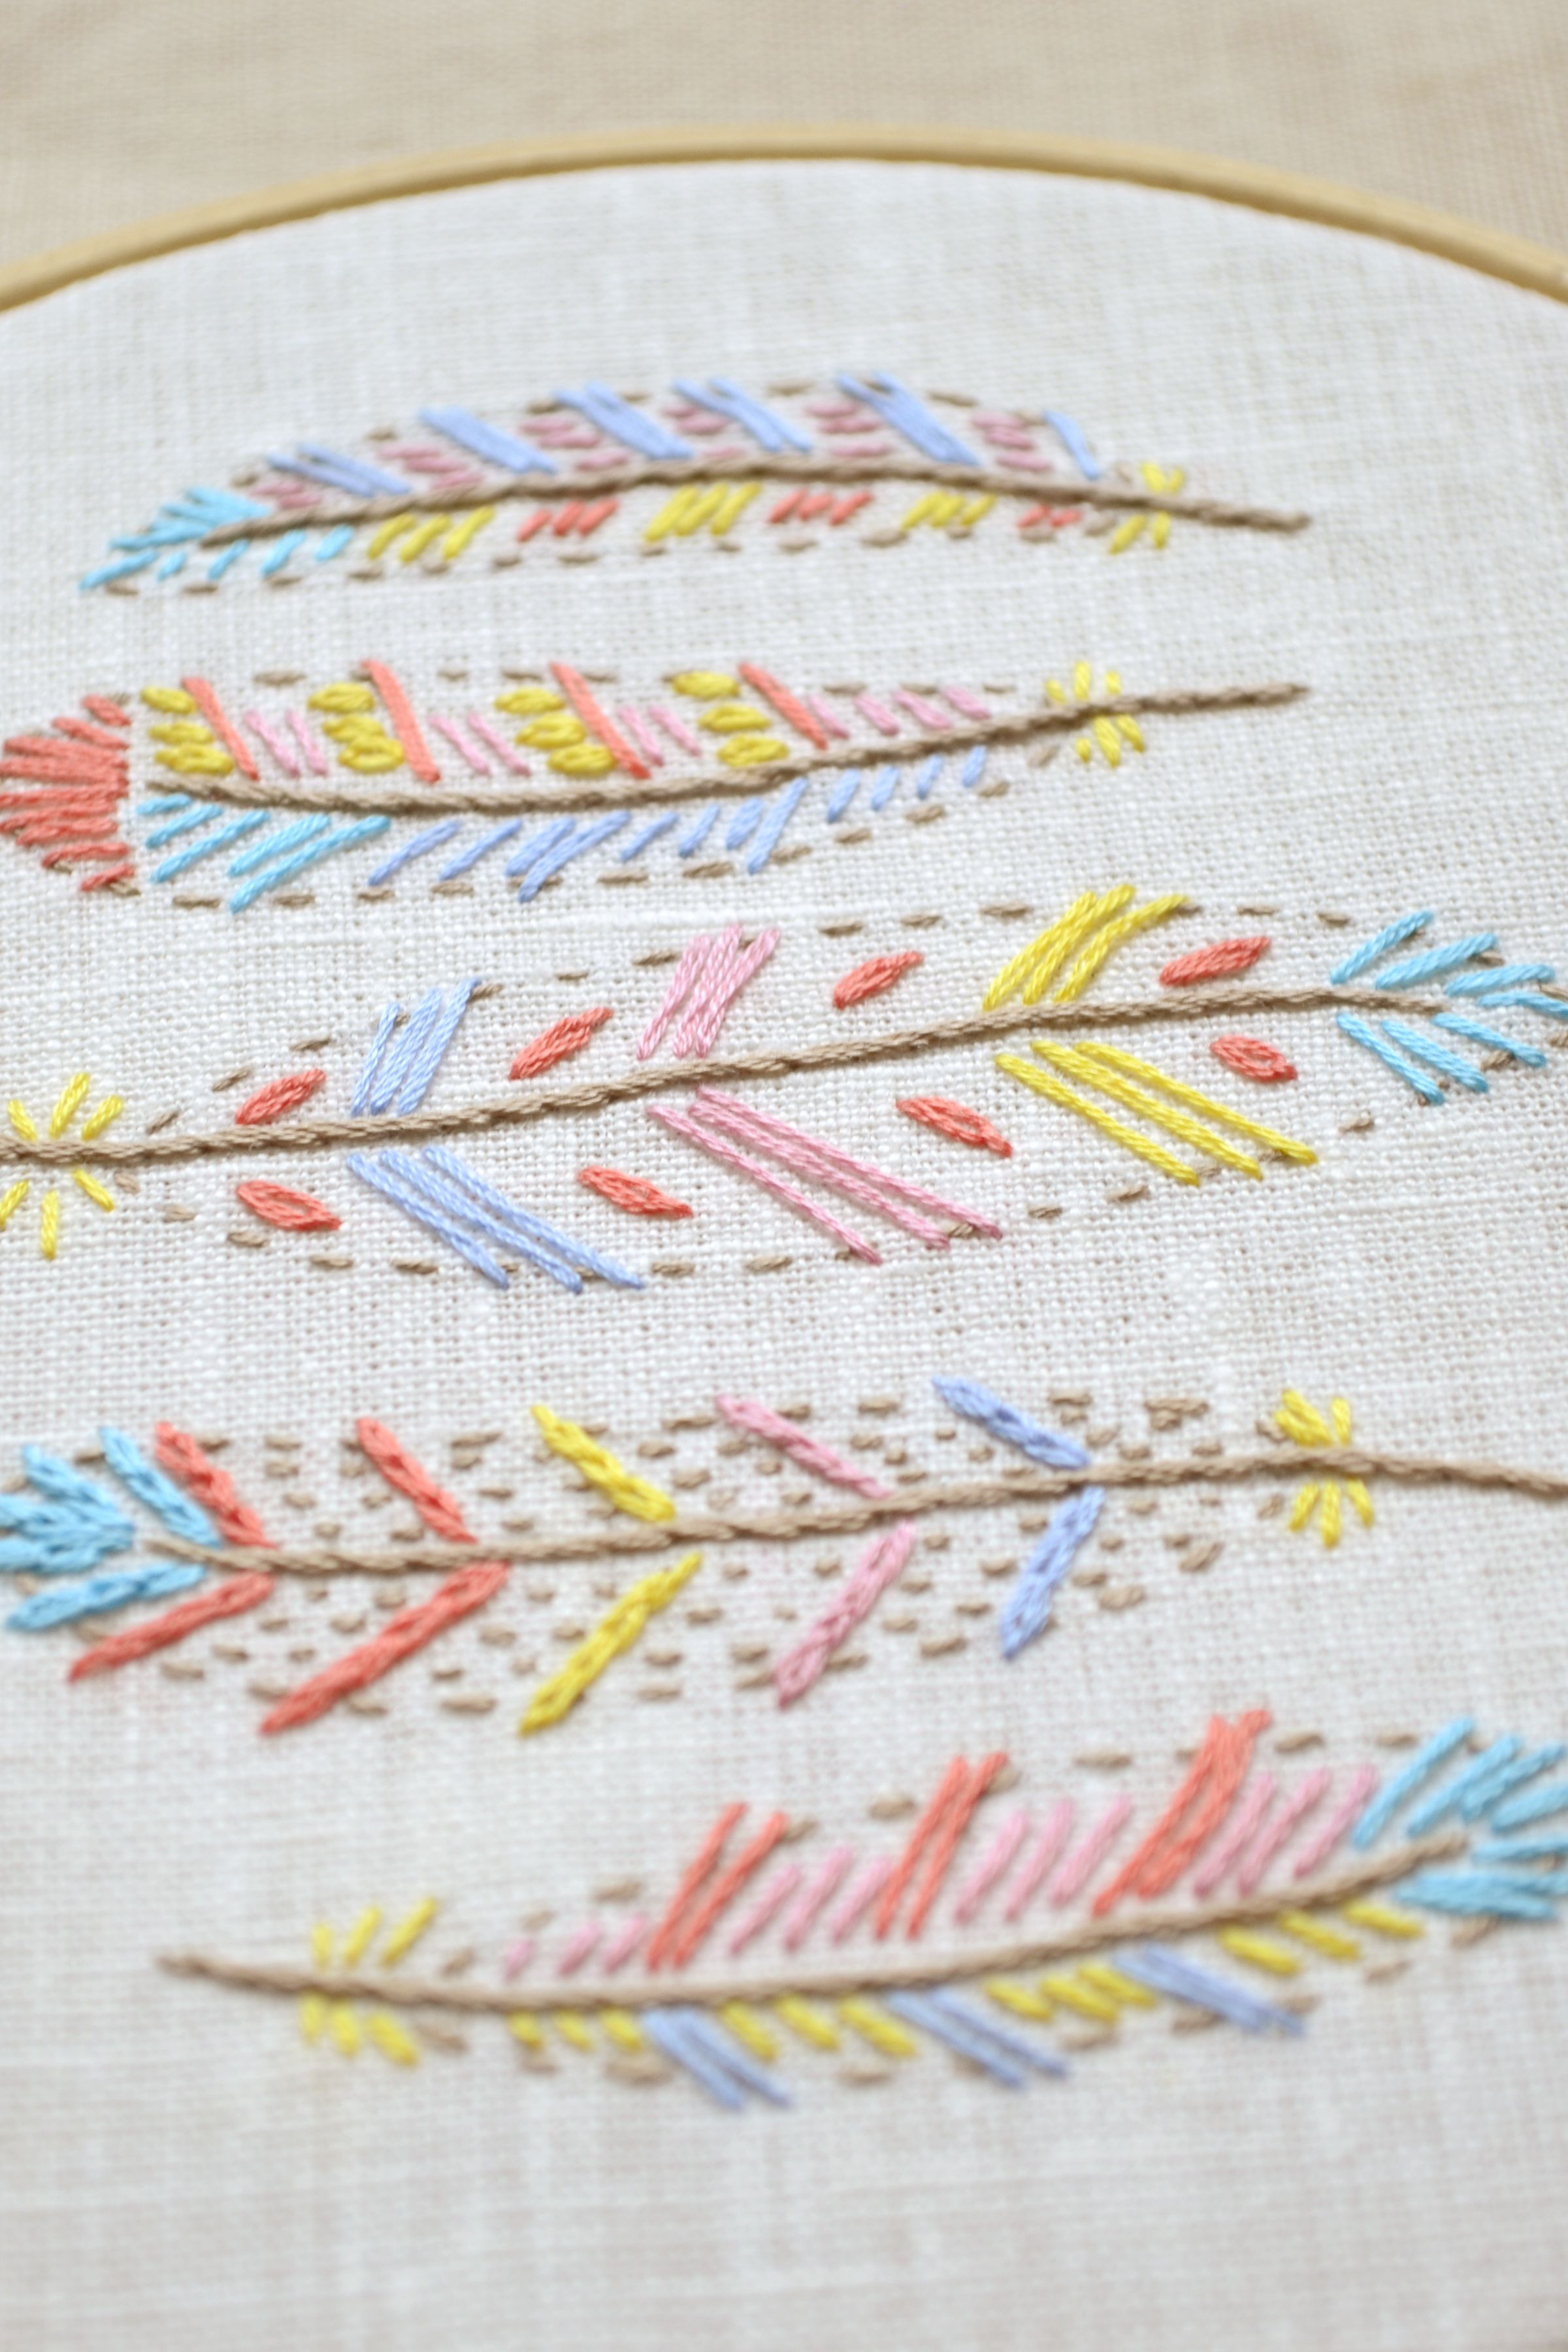 Hand embroidery embroidery pattern embroidery patterns hand embroidery embroidery pattern embroidery patterns embroidery design feathers boho bankloansurffo Gallery